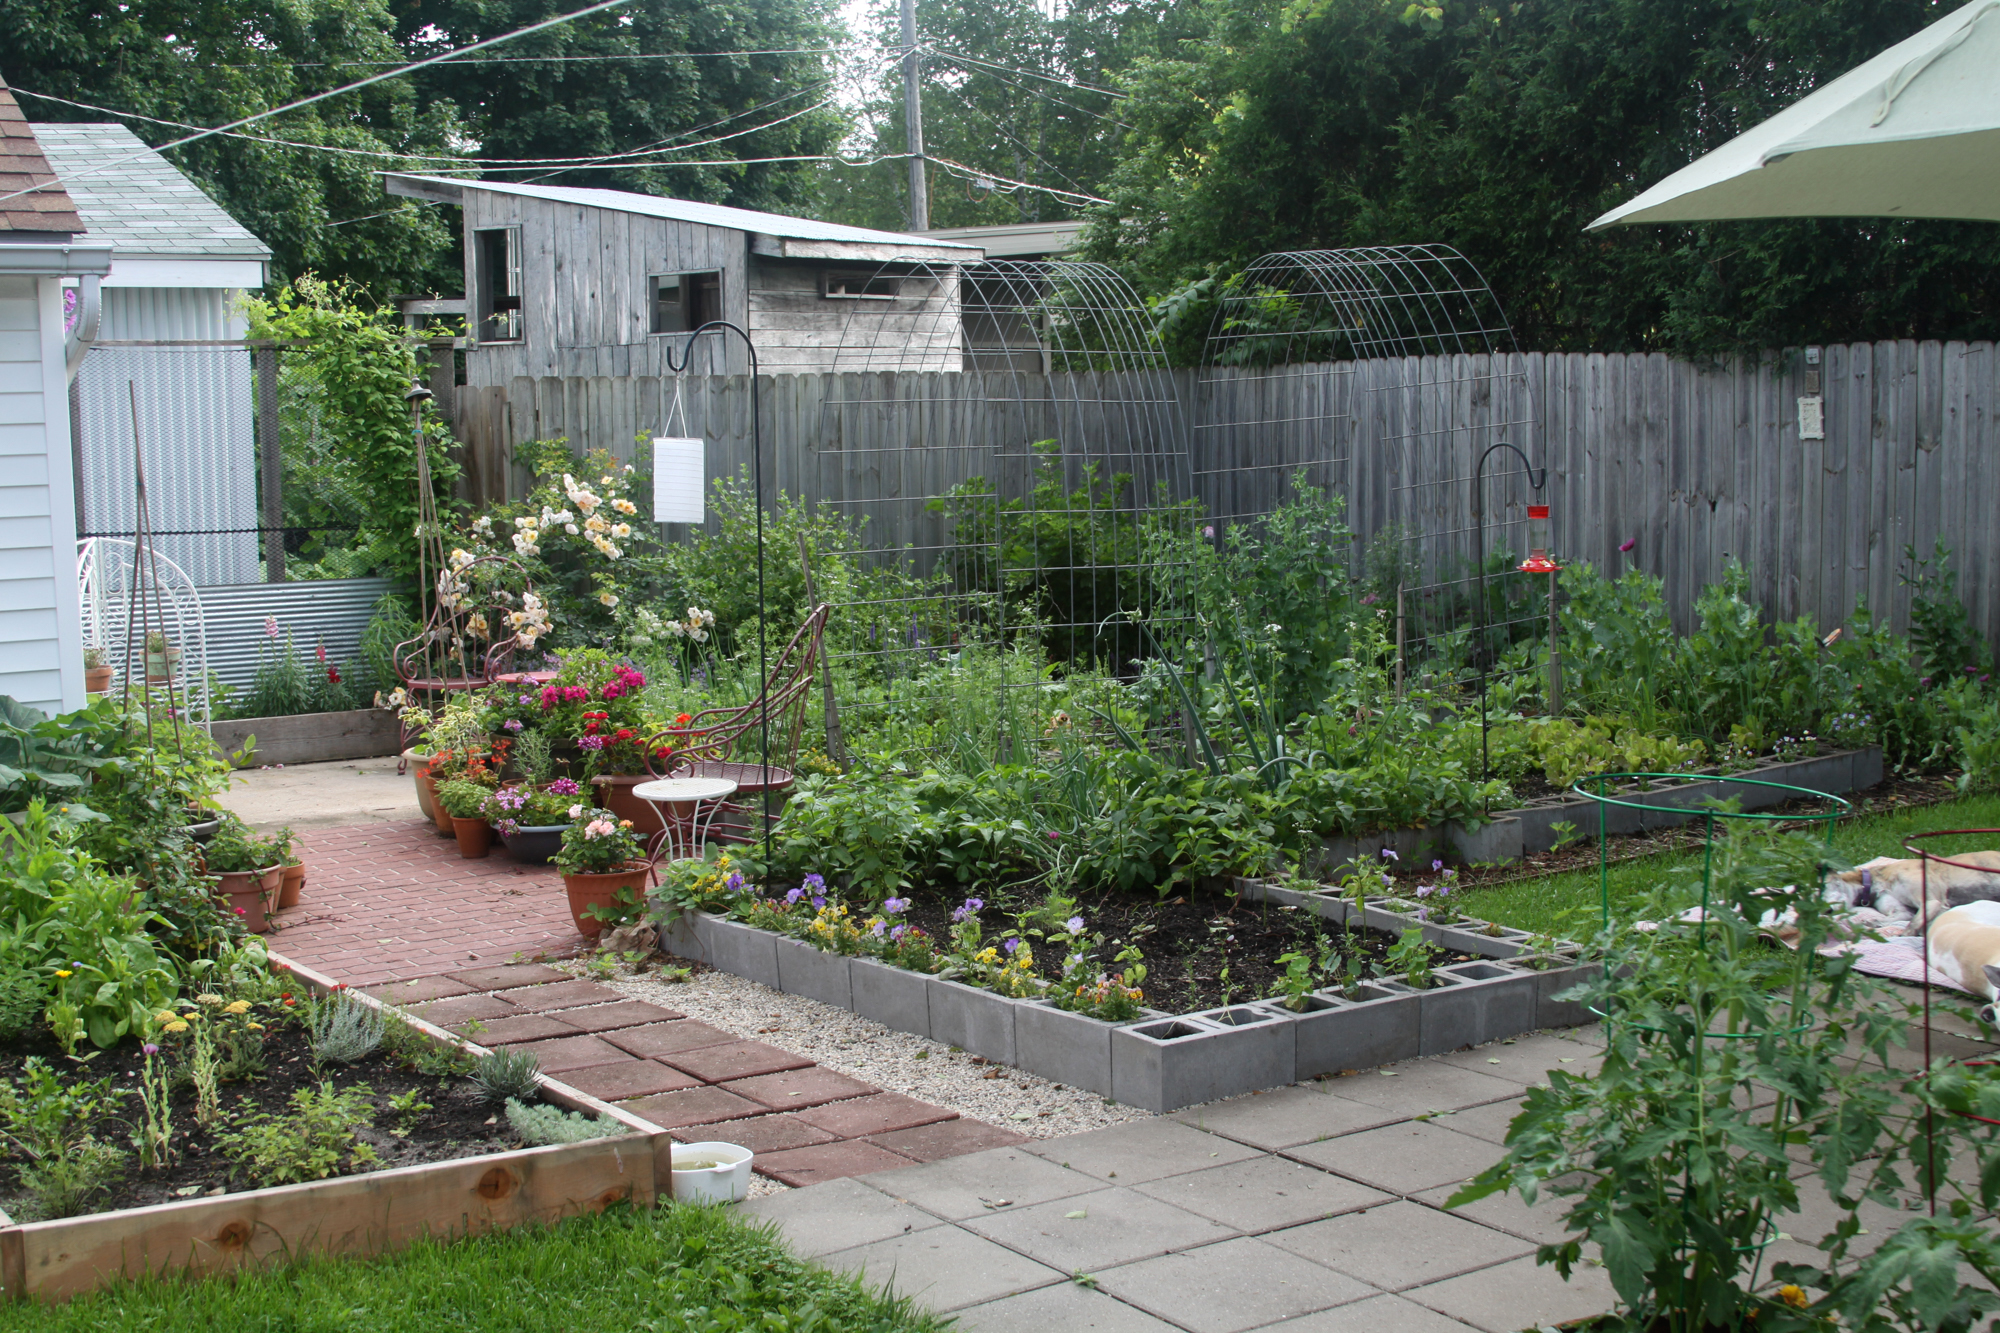 In Anne Butera's backyard more grass disappears every year and is replaced with gardens